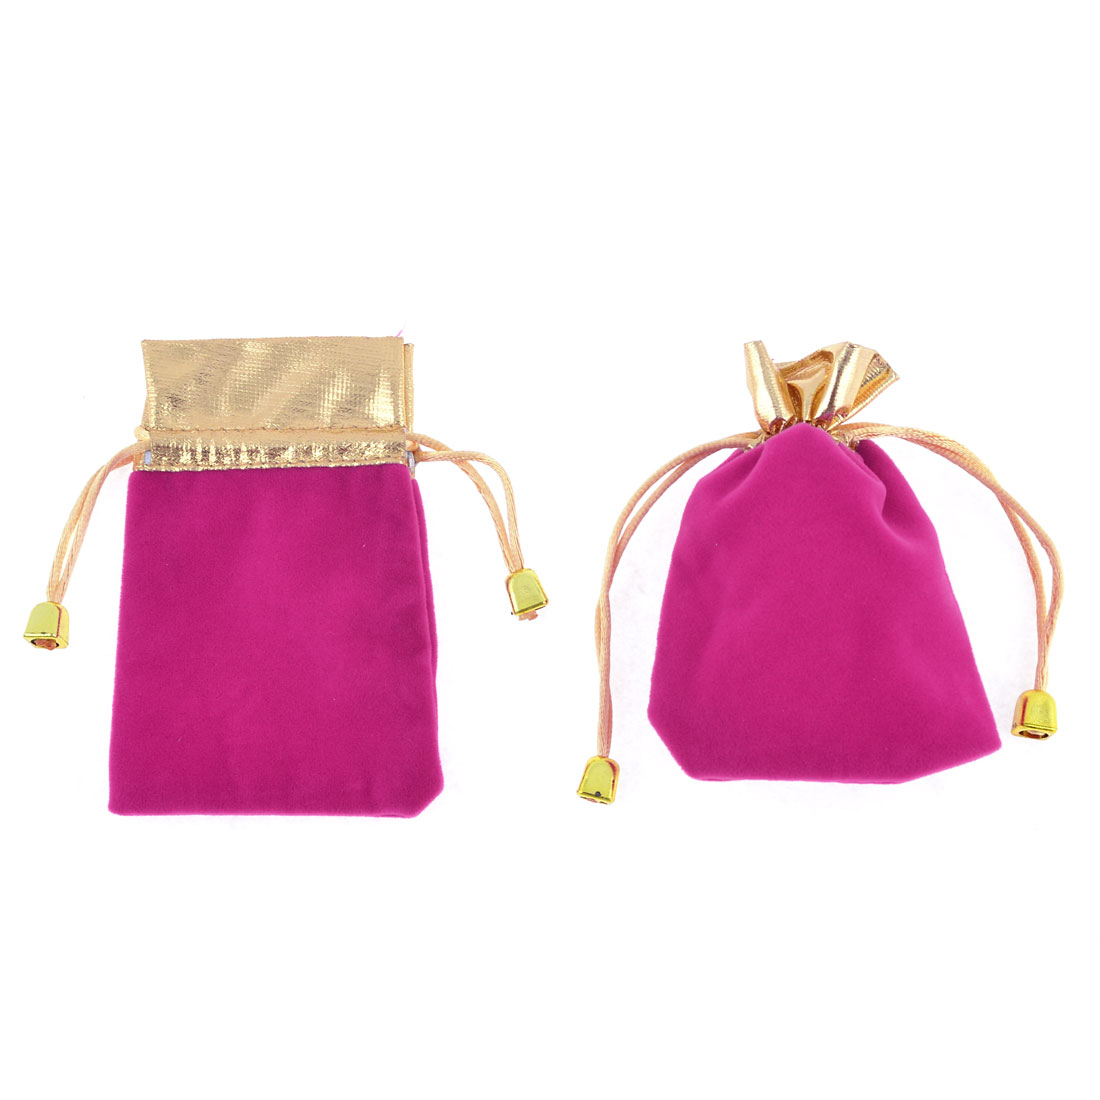 2 Pcs Fuchsia Velvet Vertical Pull String Bag Pouch for Cellphone MP3